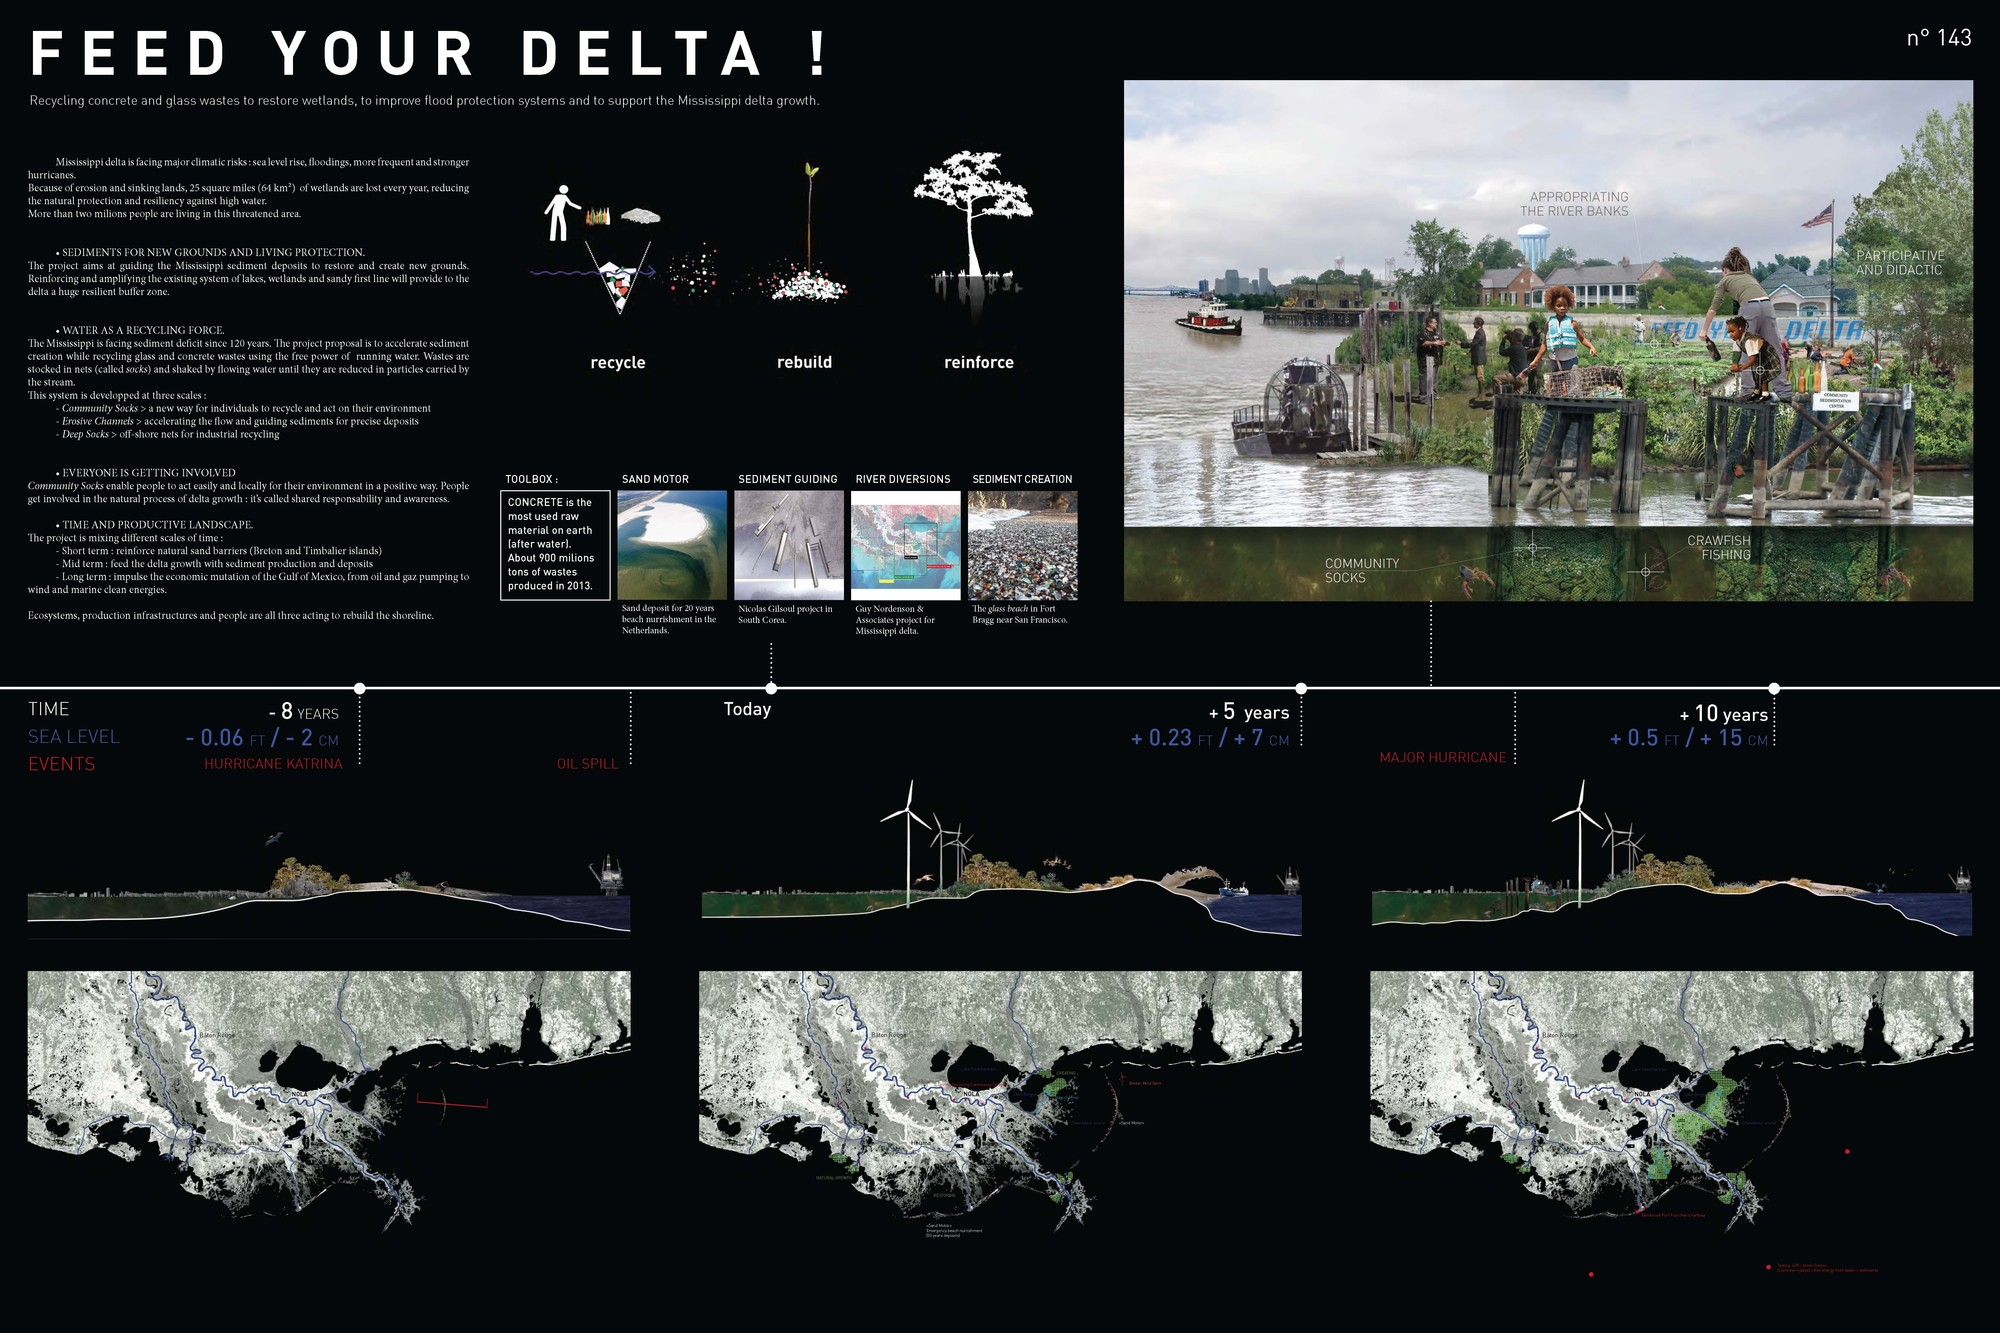 Feed Your Delta!. Image Courtesy of ONE Prize